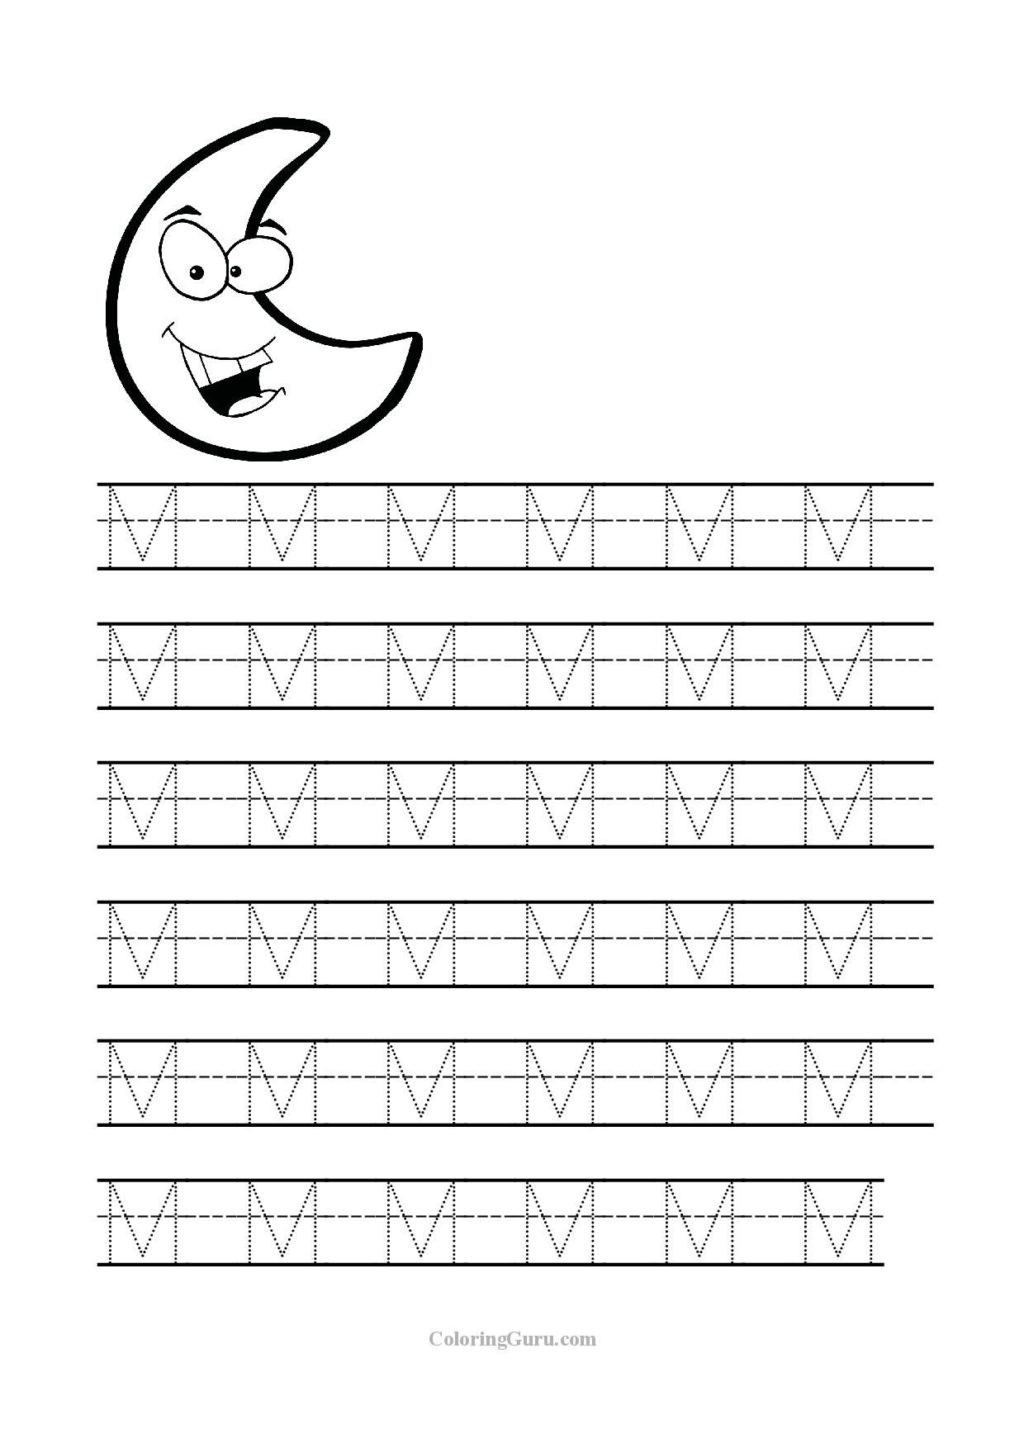 Letter M Worksheets for Preschoolers Worksheet Letters Practice for Preschoolers Free Printable